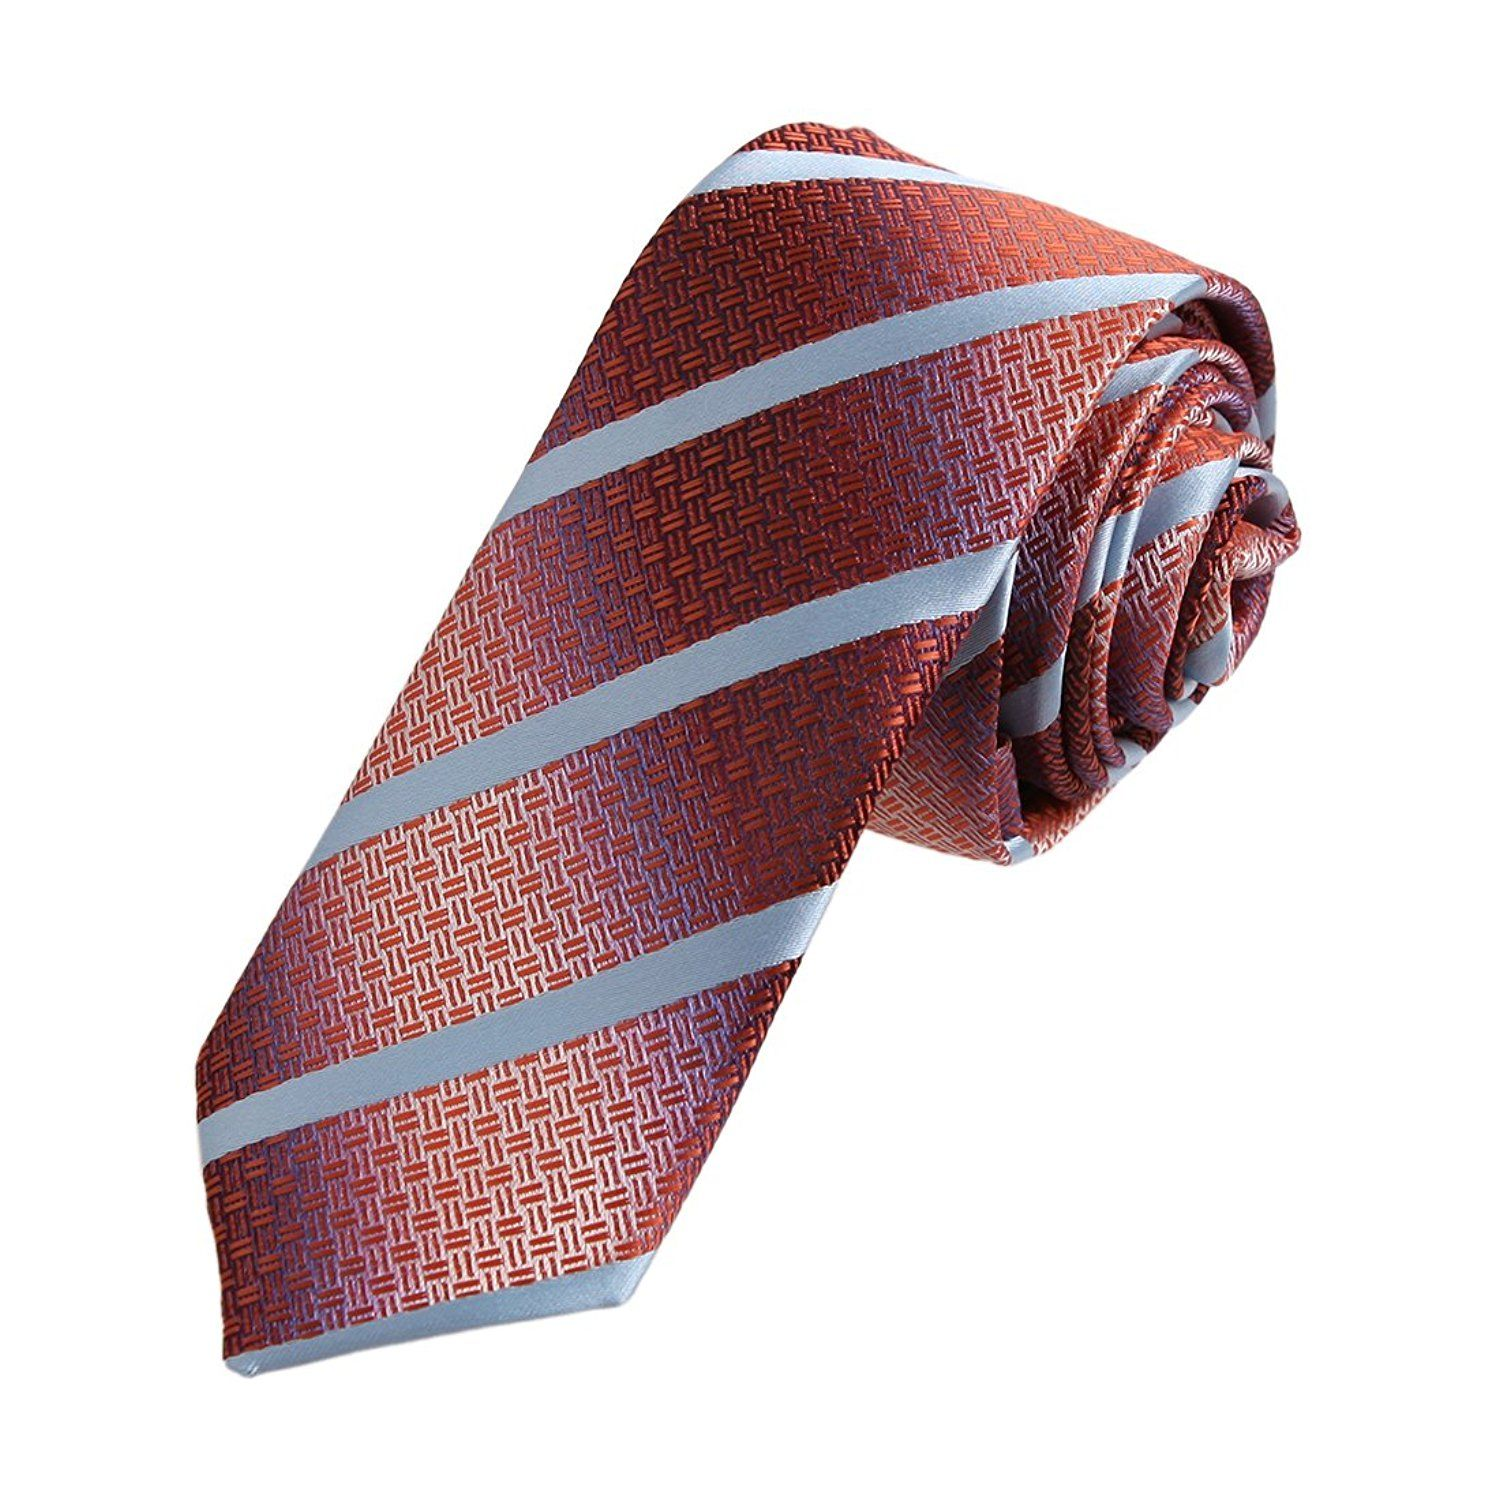 DAE7A.02 Various Stripes Microfiber Skinny Tie Fitness Fabric By Dan Smith ** Discover this special product, click the image : Gift for Guys